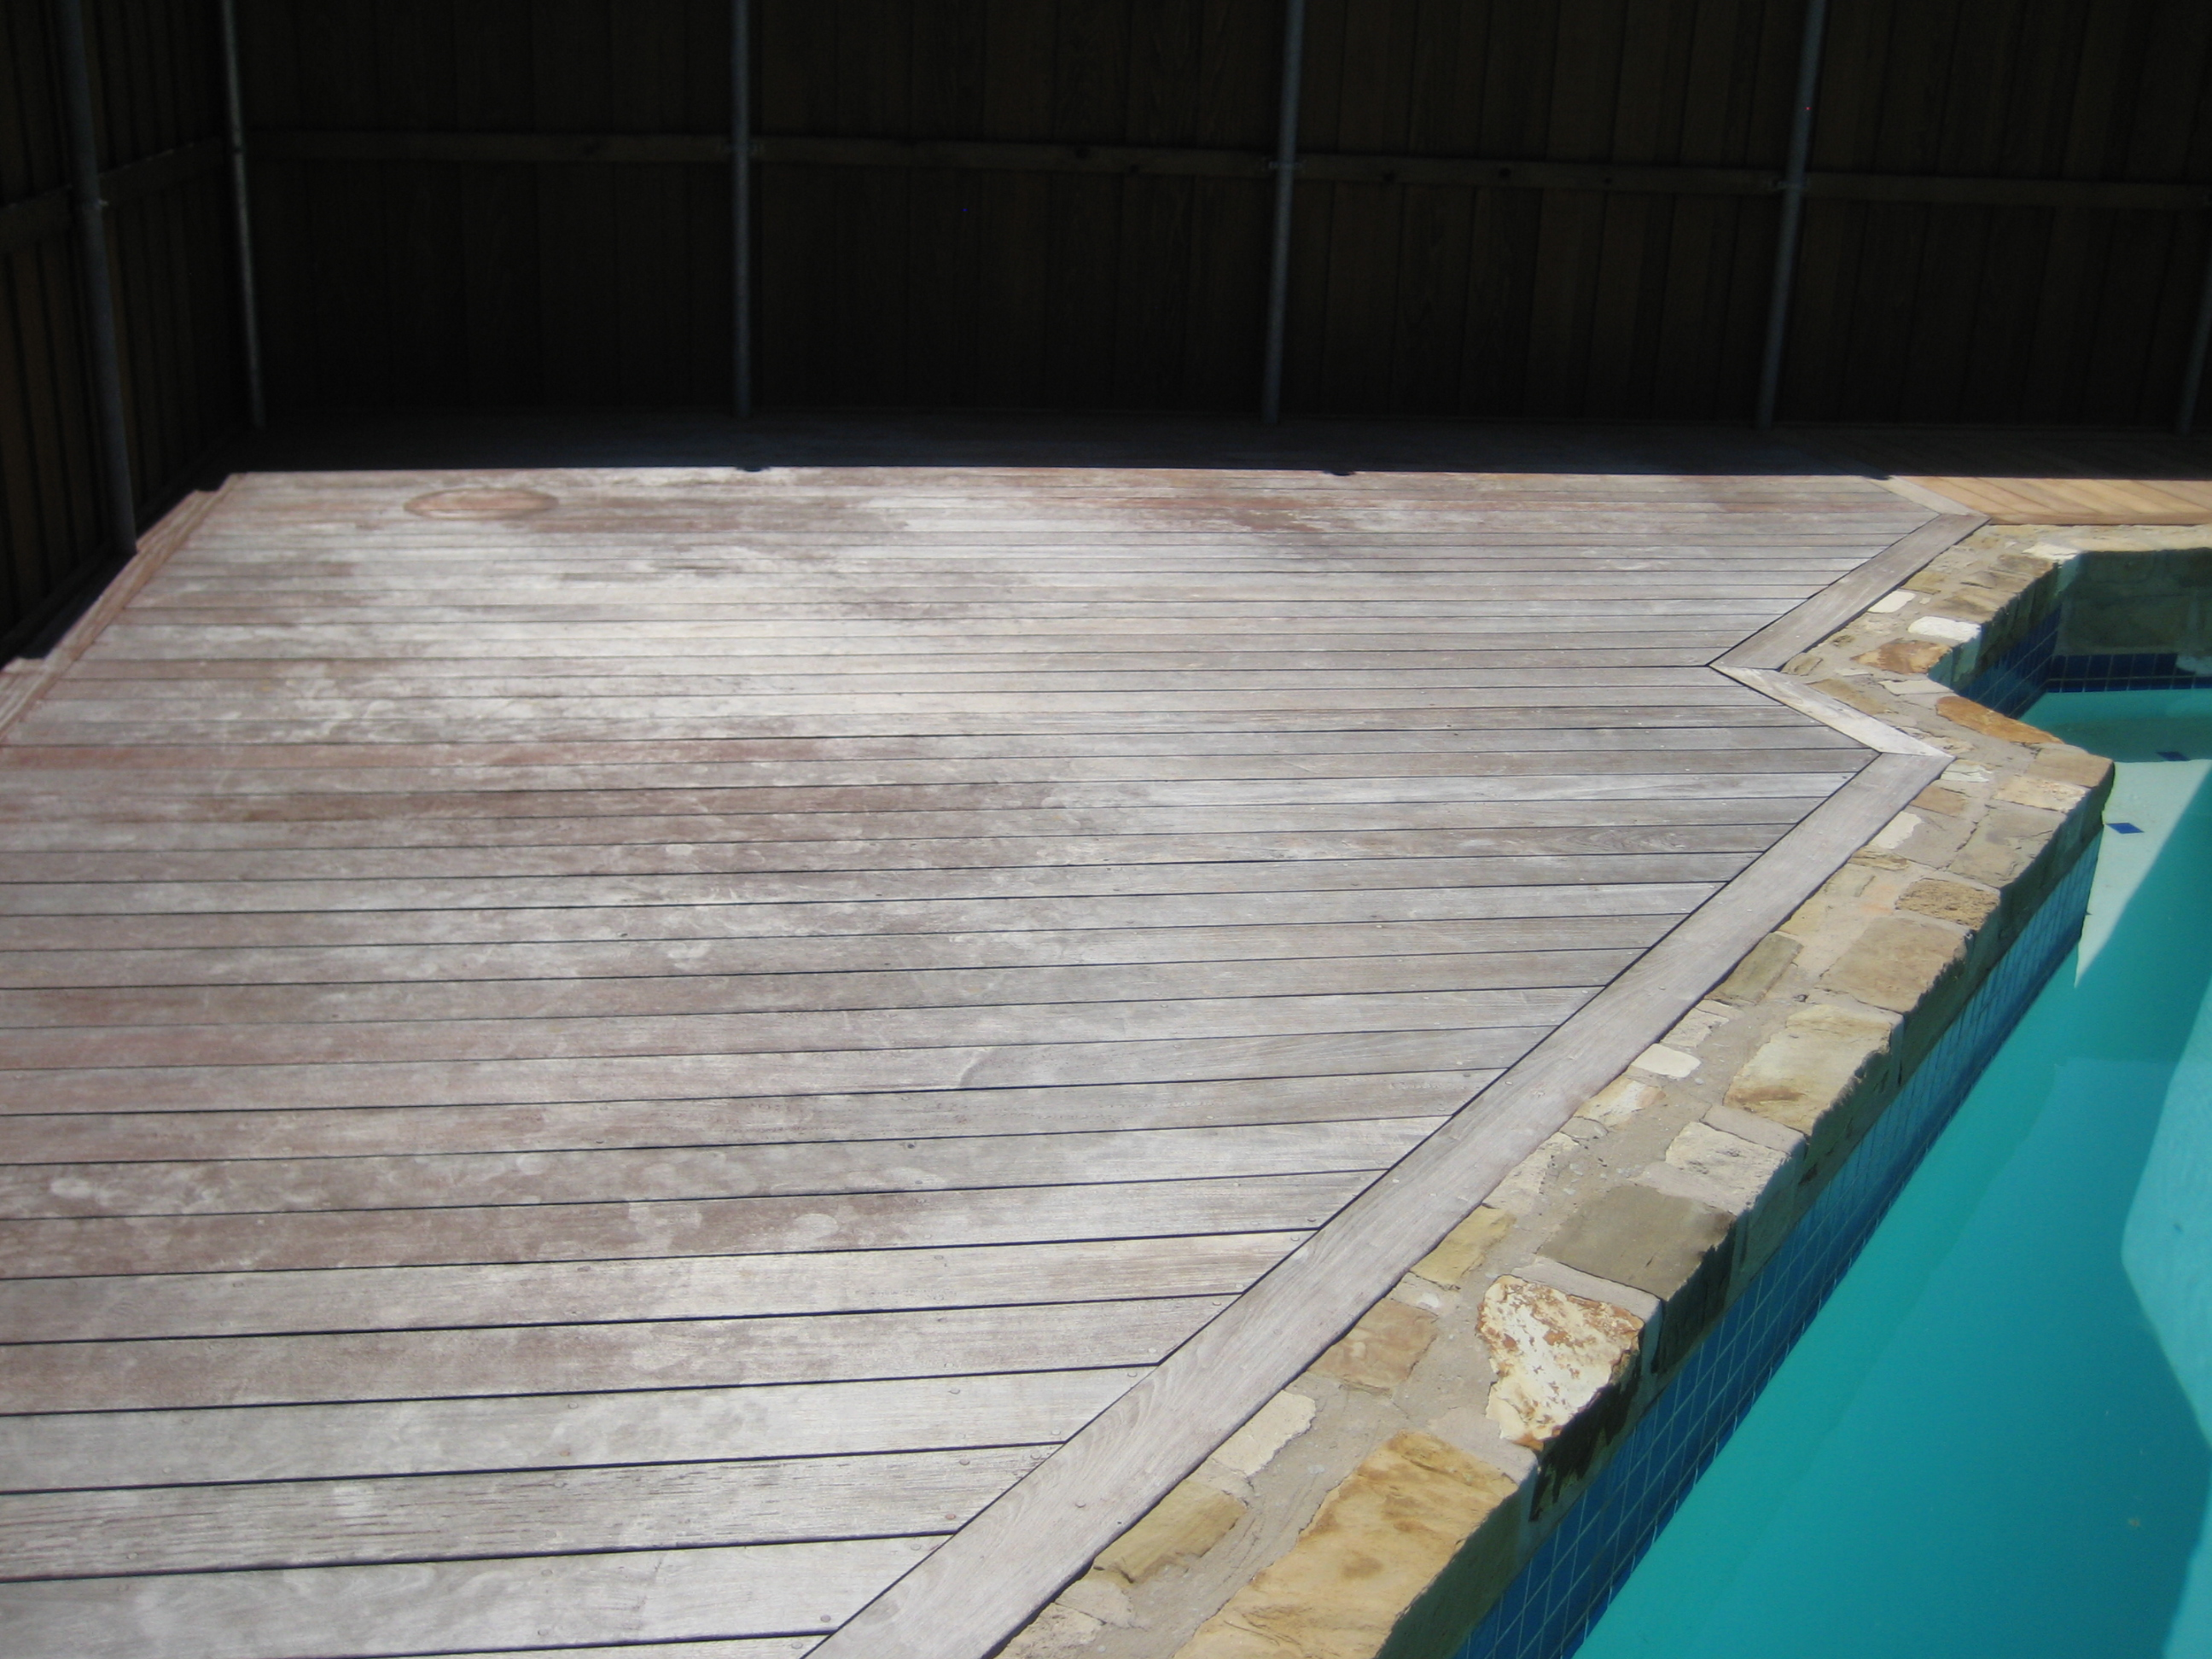 Diy Deck Cleaner How To Clean An Ipe Deck Or Other Wood Deck Edeck Inc Blog